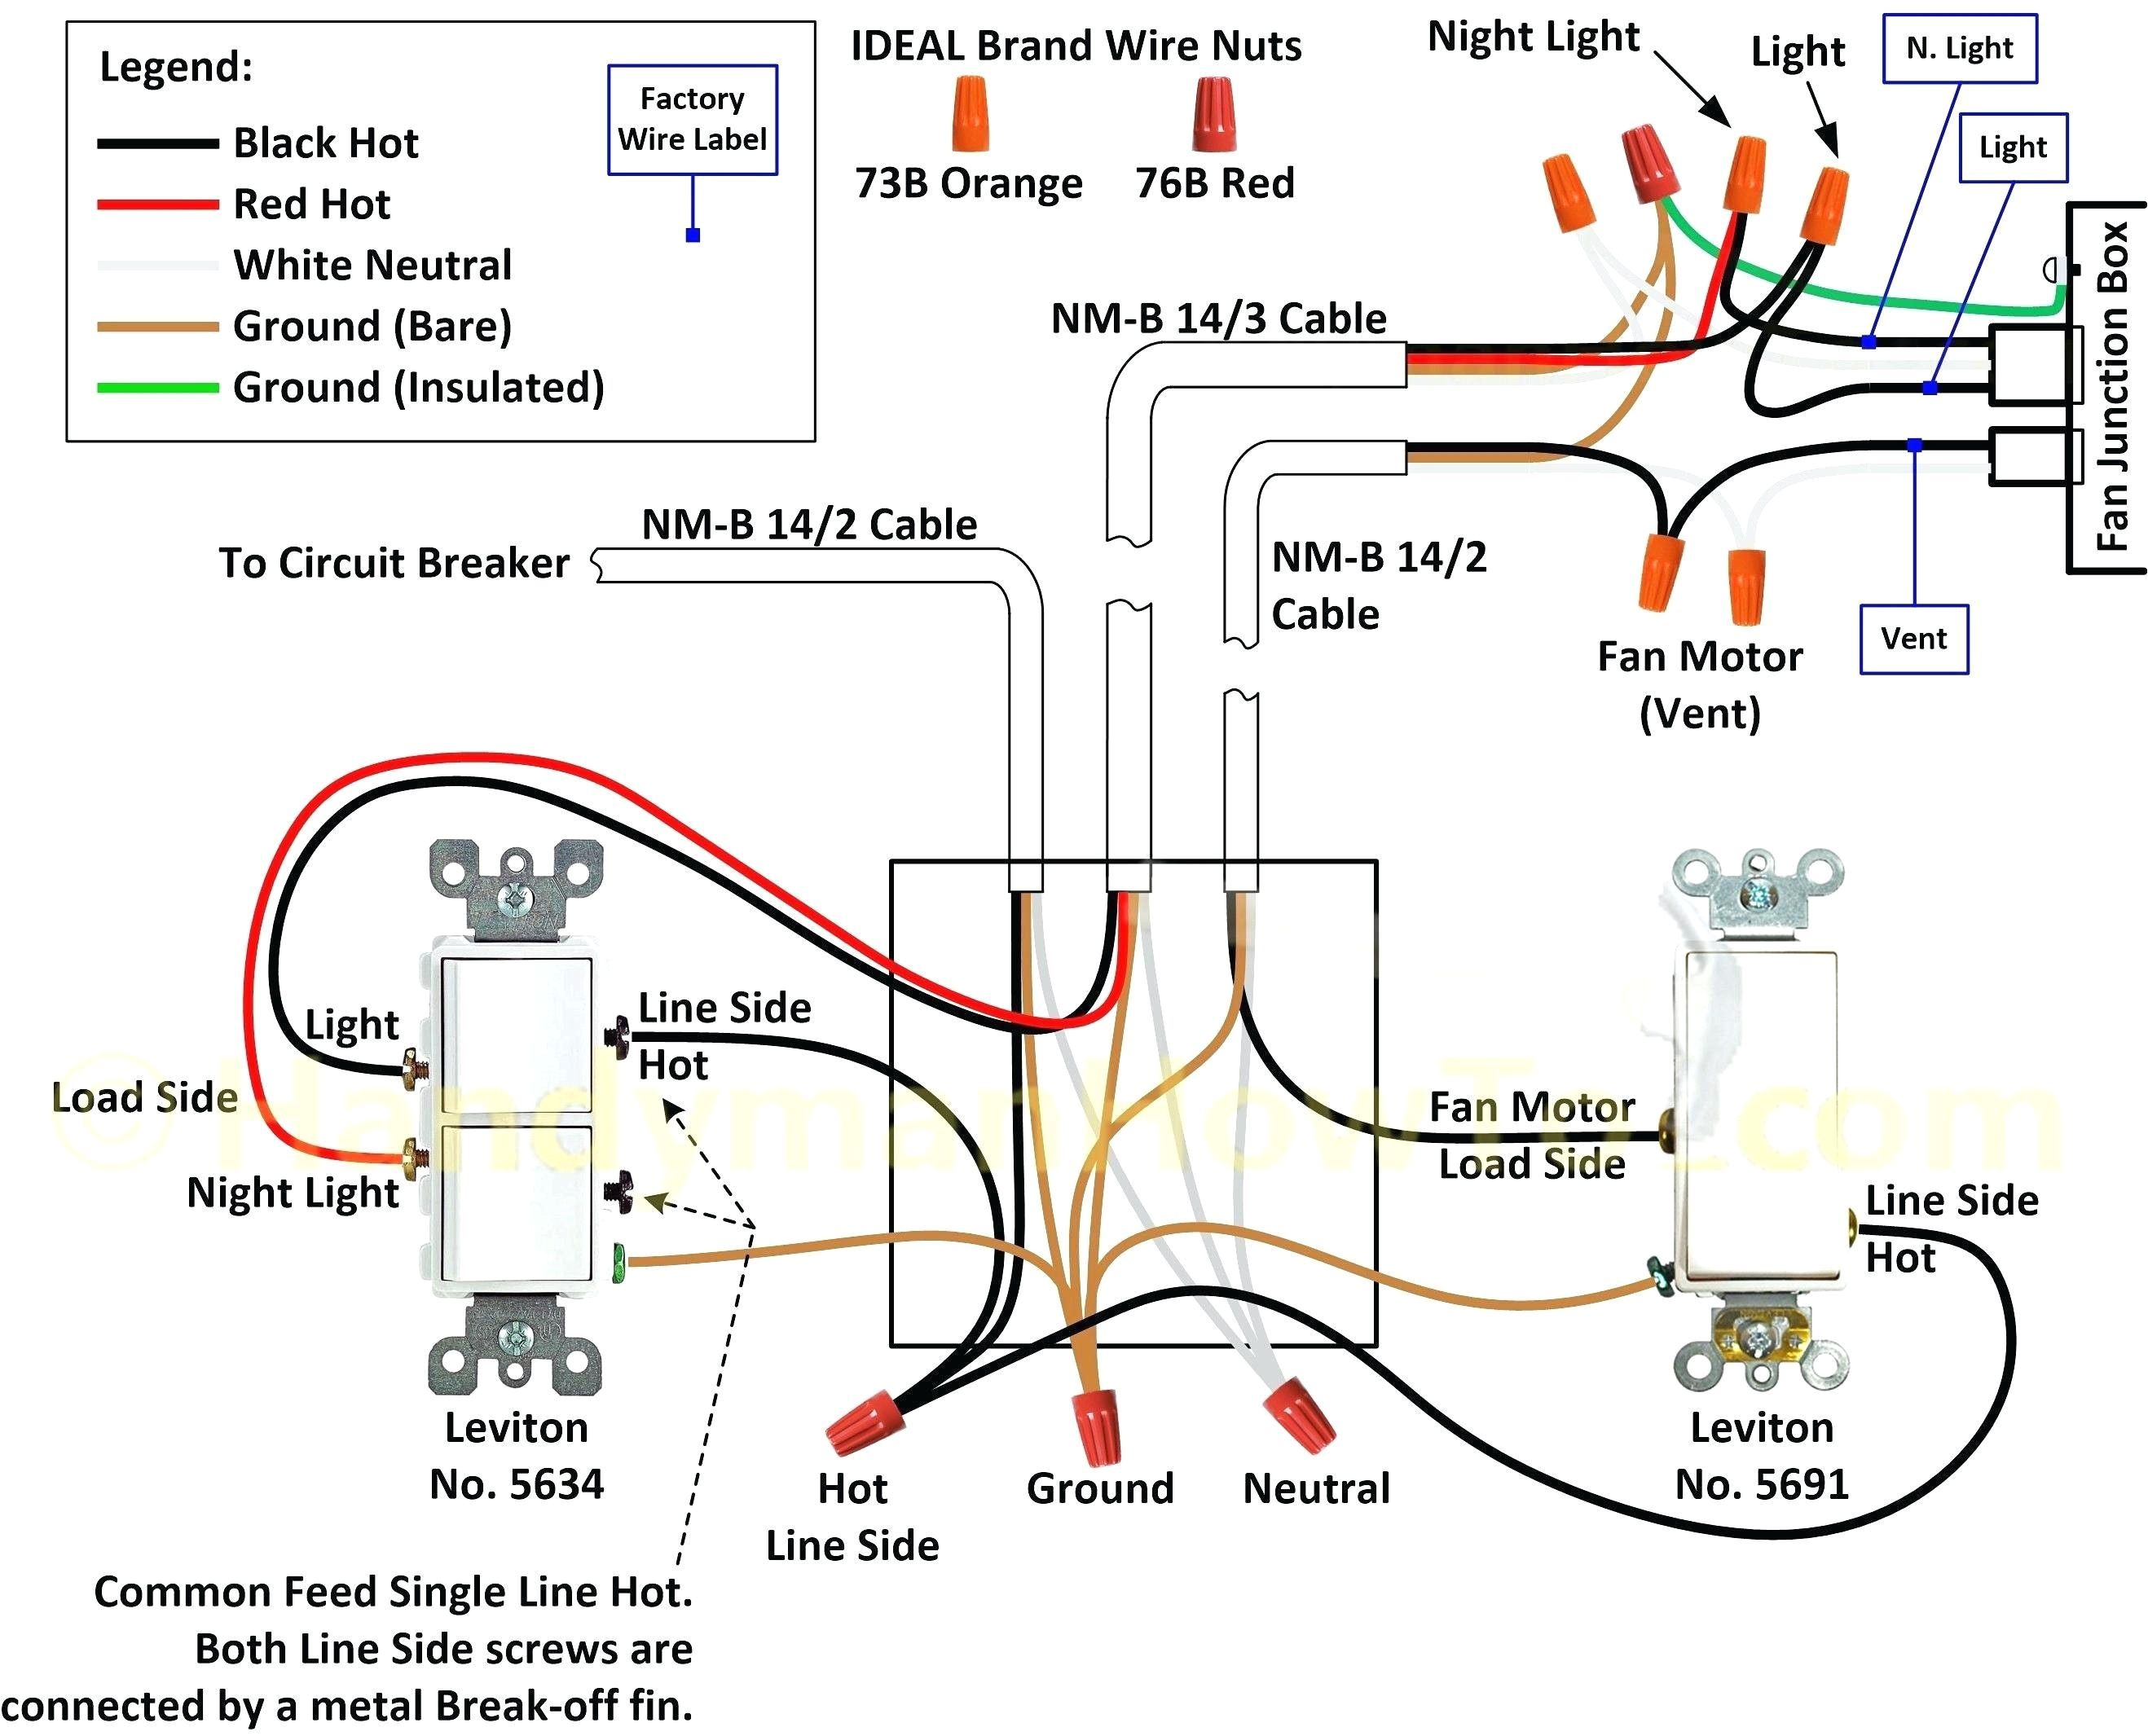 dc 3 wire diagram wiring diagram operations 3 wire dc fan wiring diagram dc 3 wire diagram